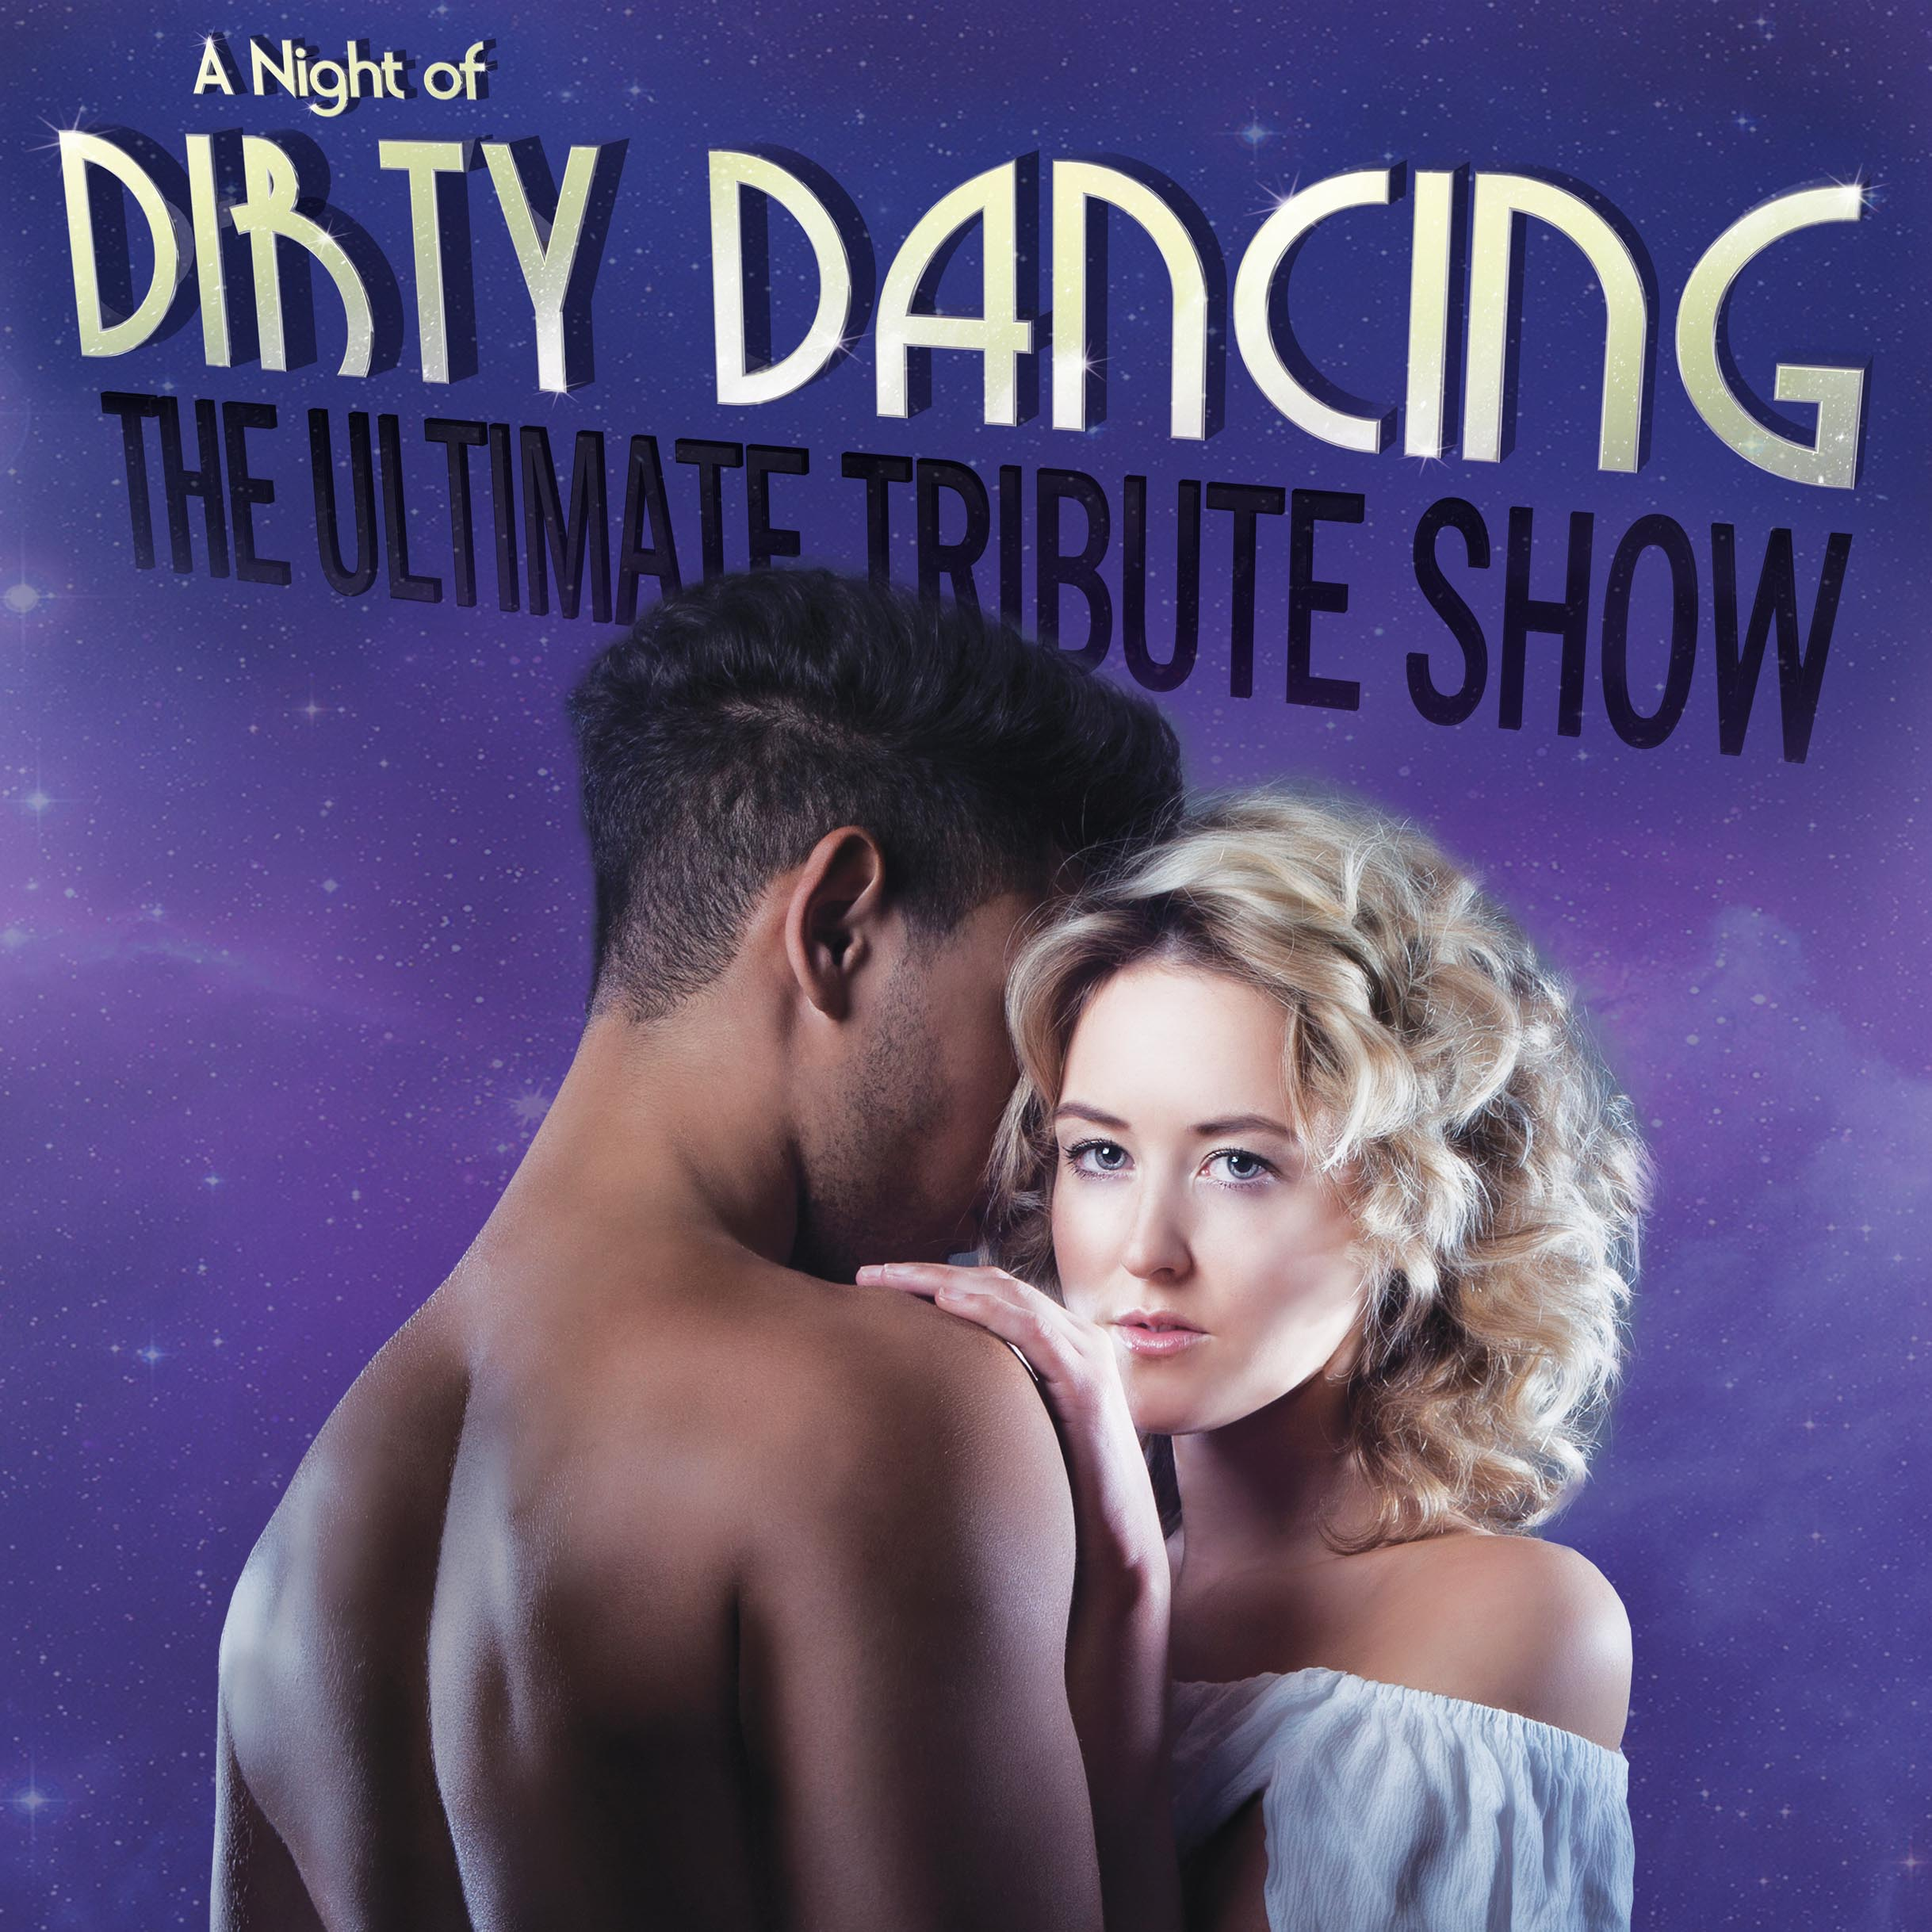 Featuring all the hits from everyone's favourite dance movie Dirty Dancing, a brand-new, spectacular stage show returns to Cleckheaton in 2017.